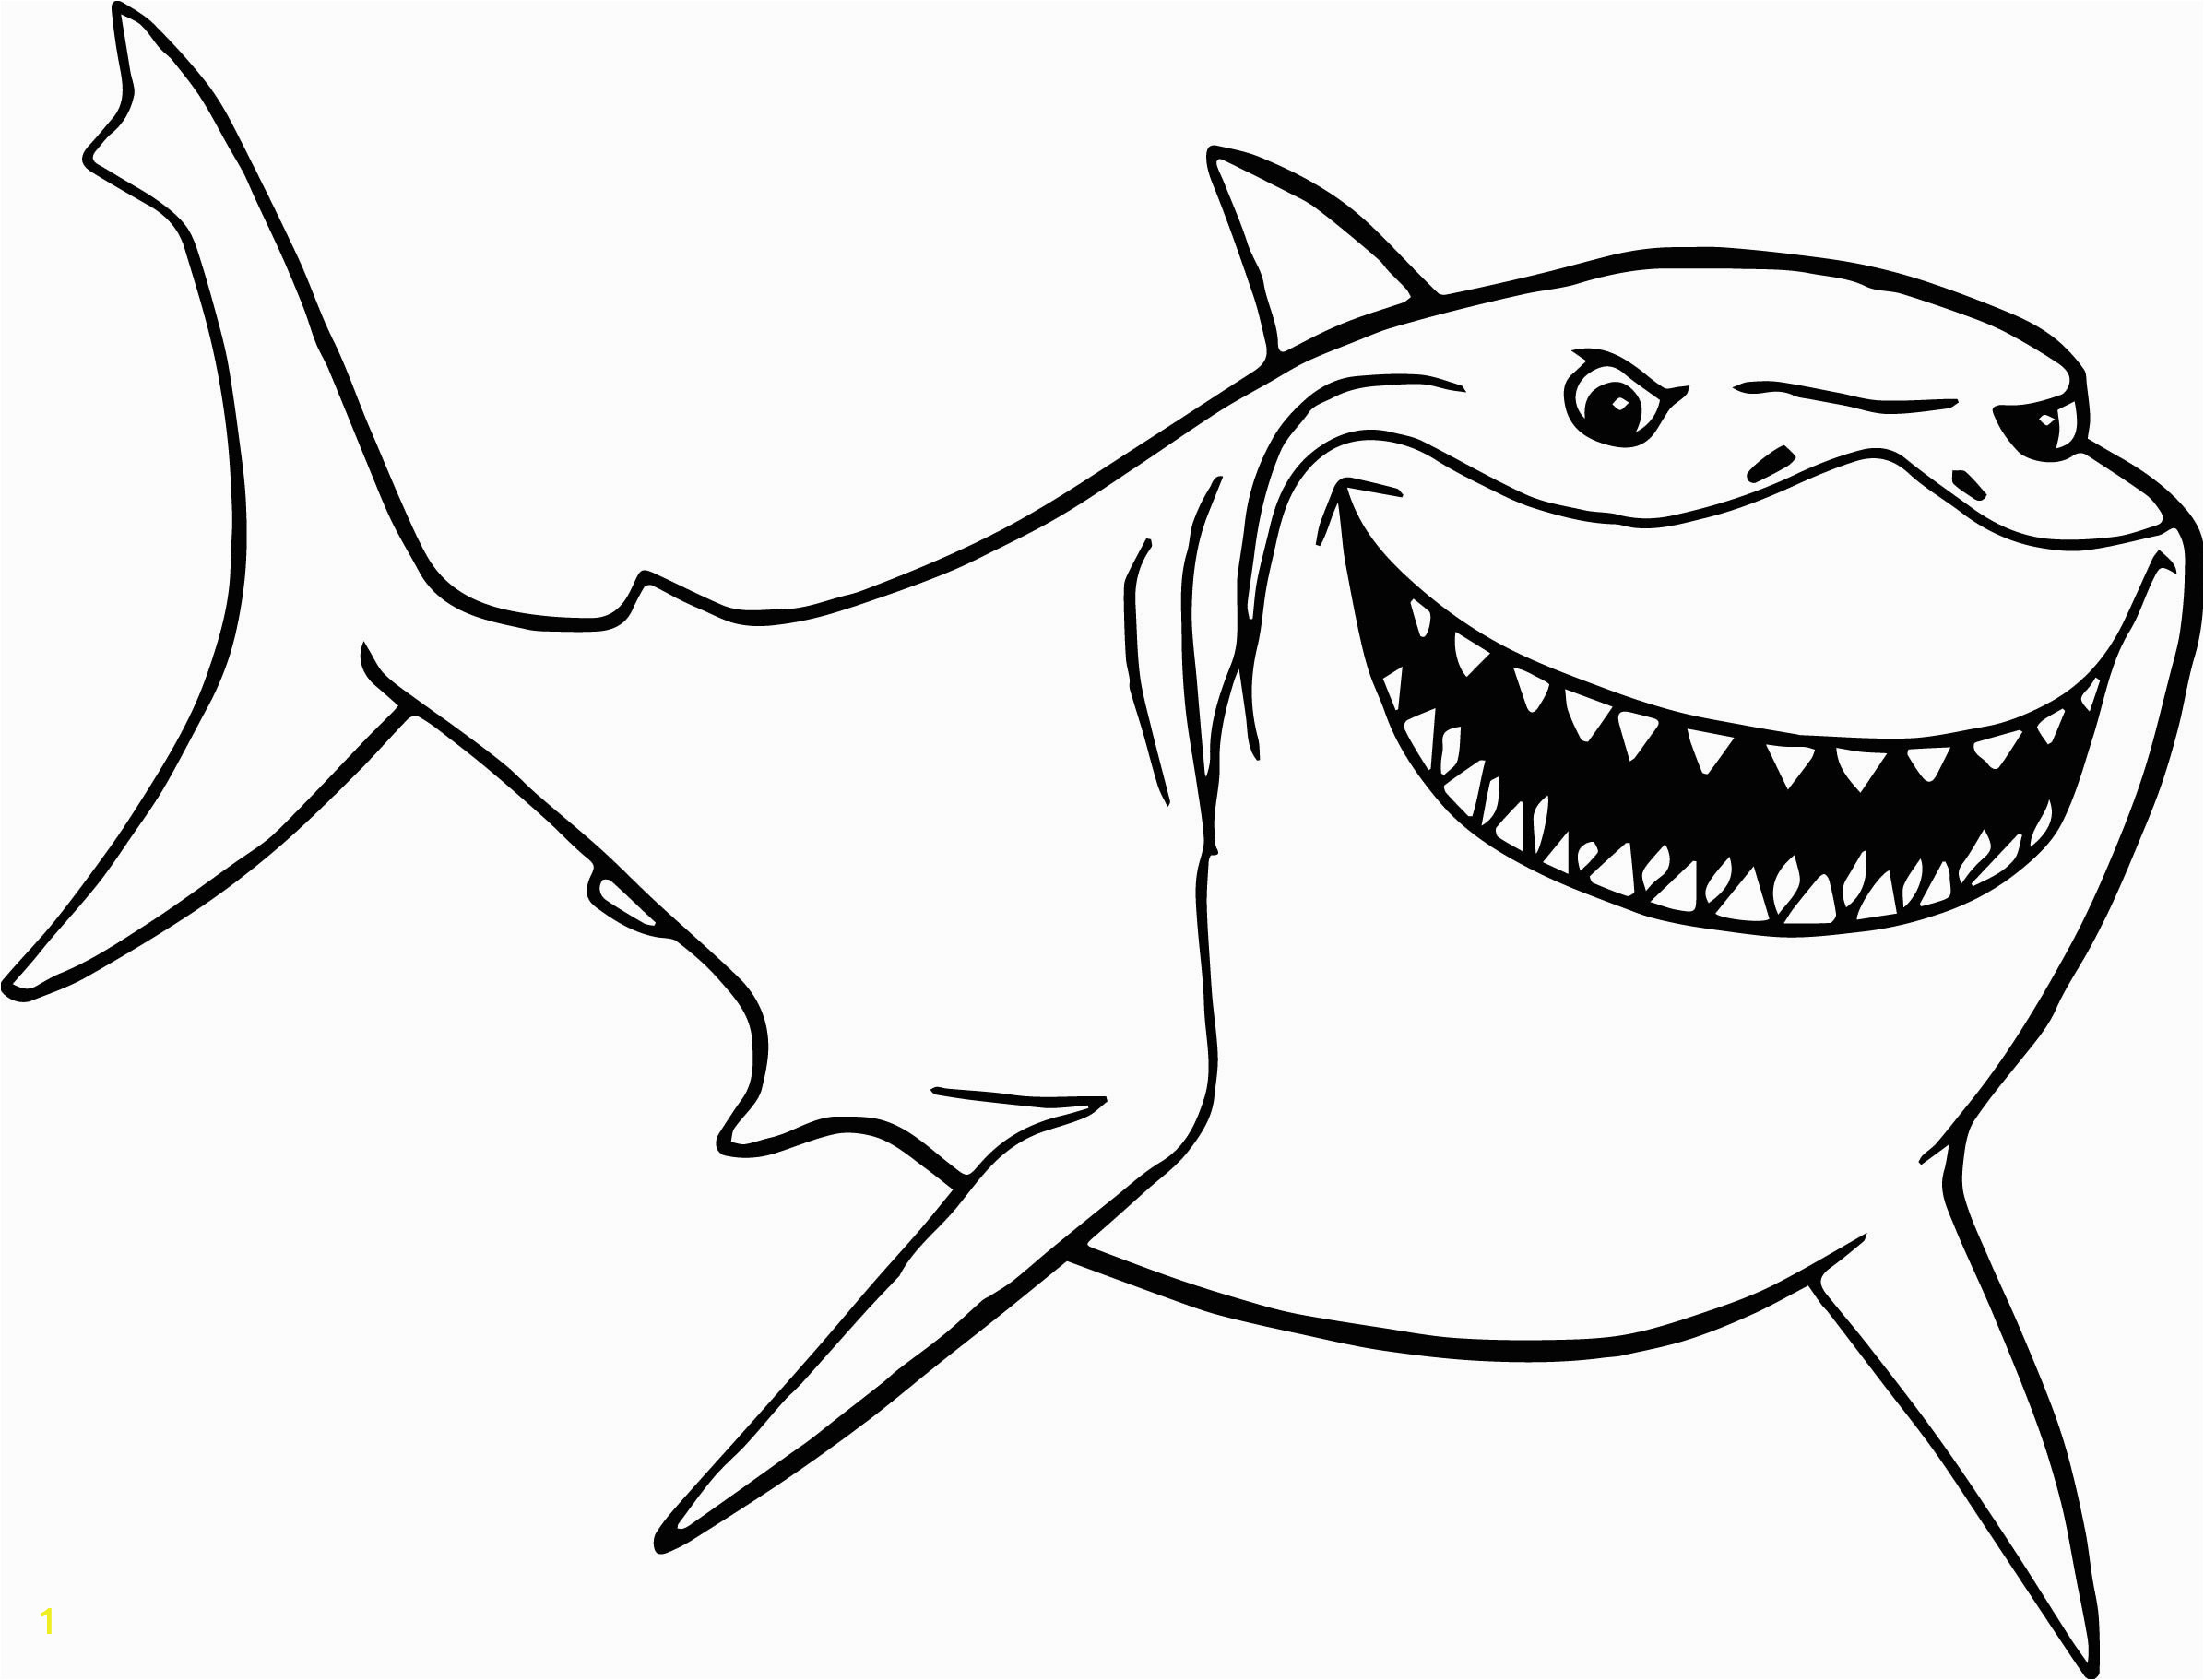 coloring sheets awesome nemo printable finding new bruce from nemoes karene free for adults to print kids animal sheet colouring pictures pages